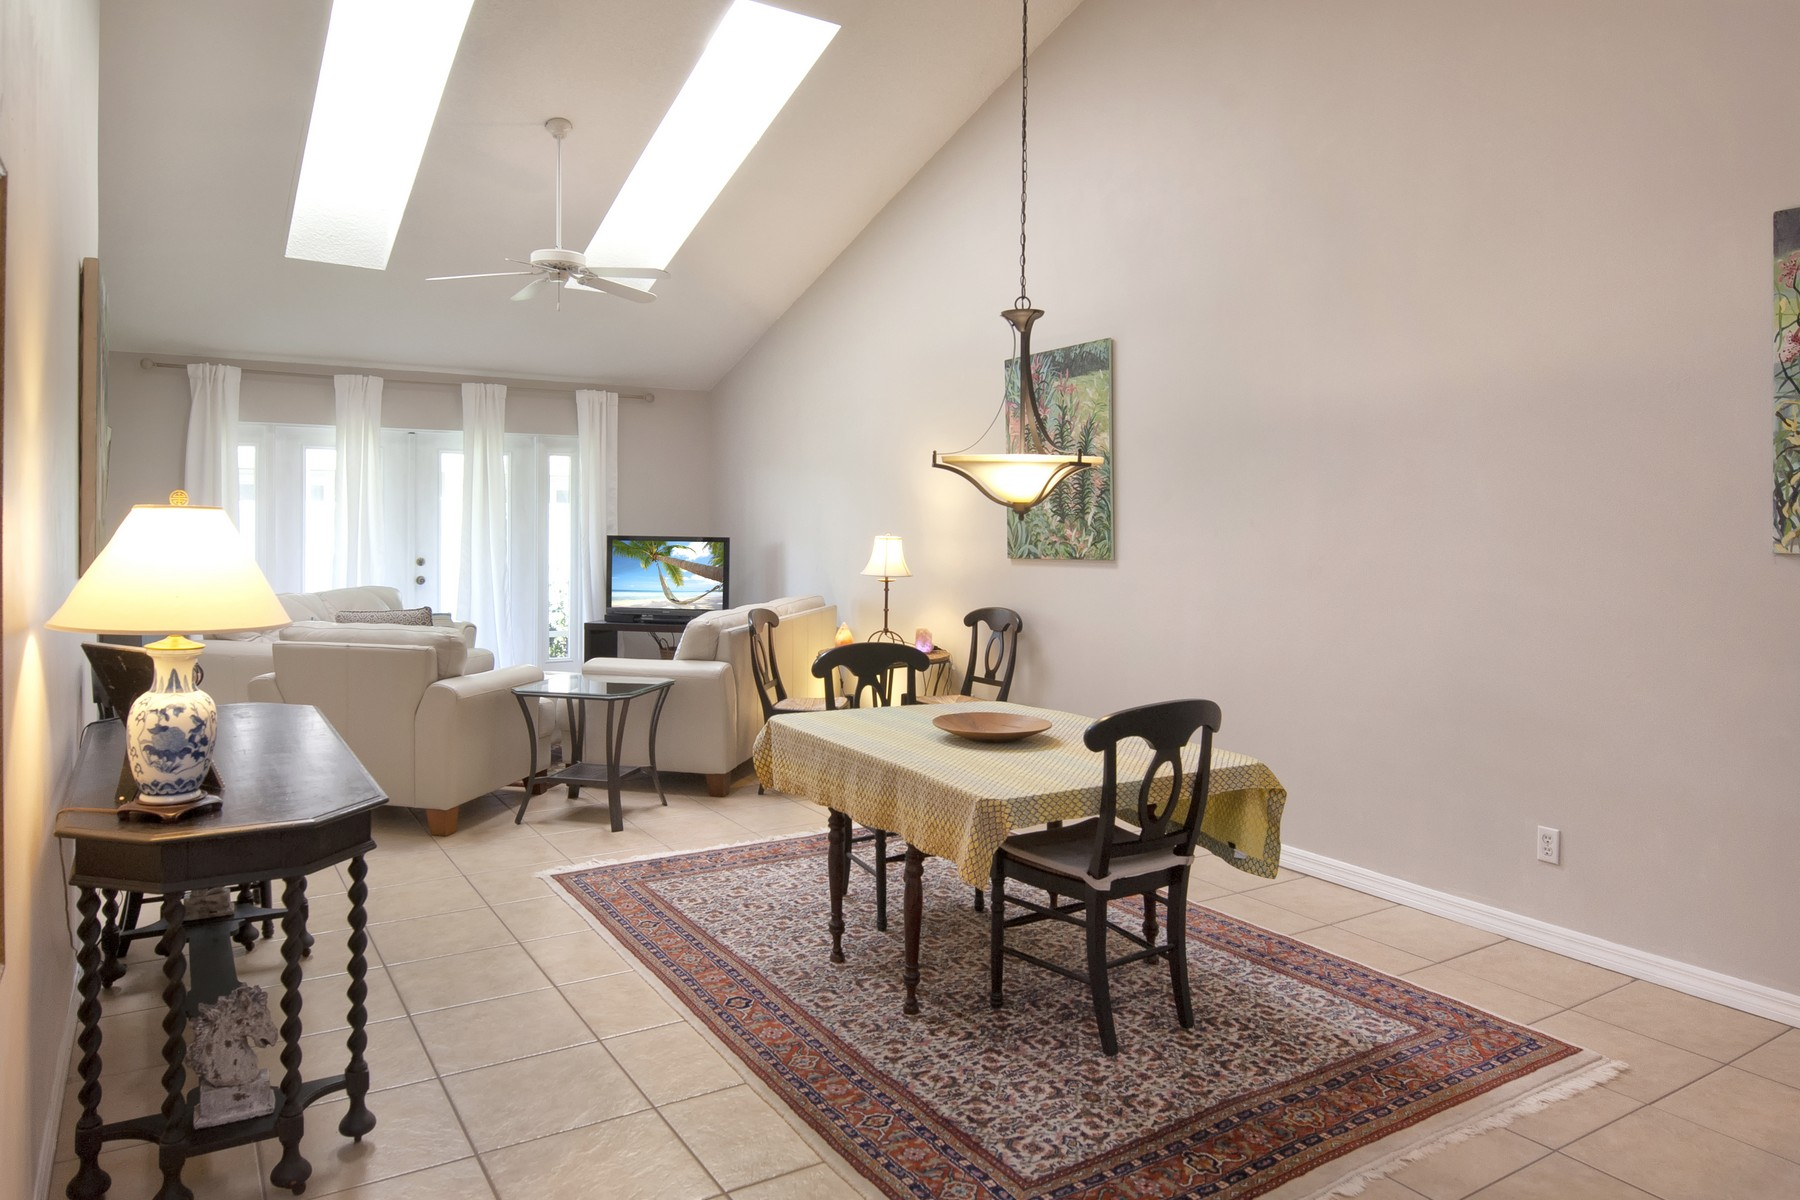 Additional photo for property listing at Adorable Cottage-Like Home with Charming Features Throughout. 489 6th Manor Vero Beach, Florida 32962 United States